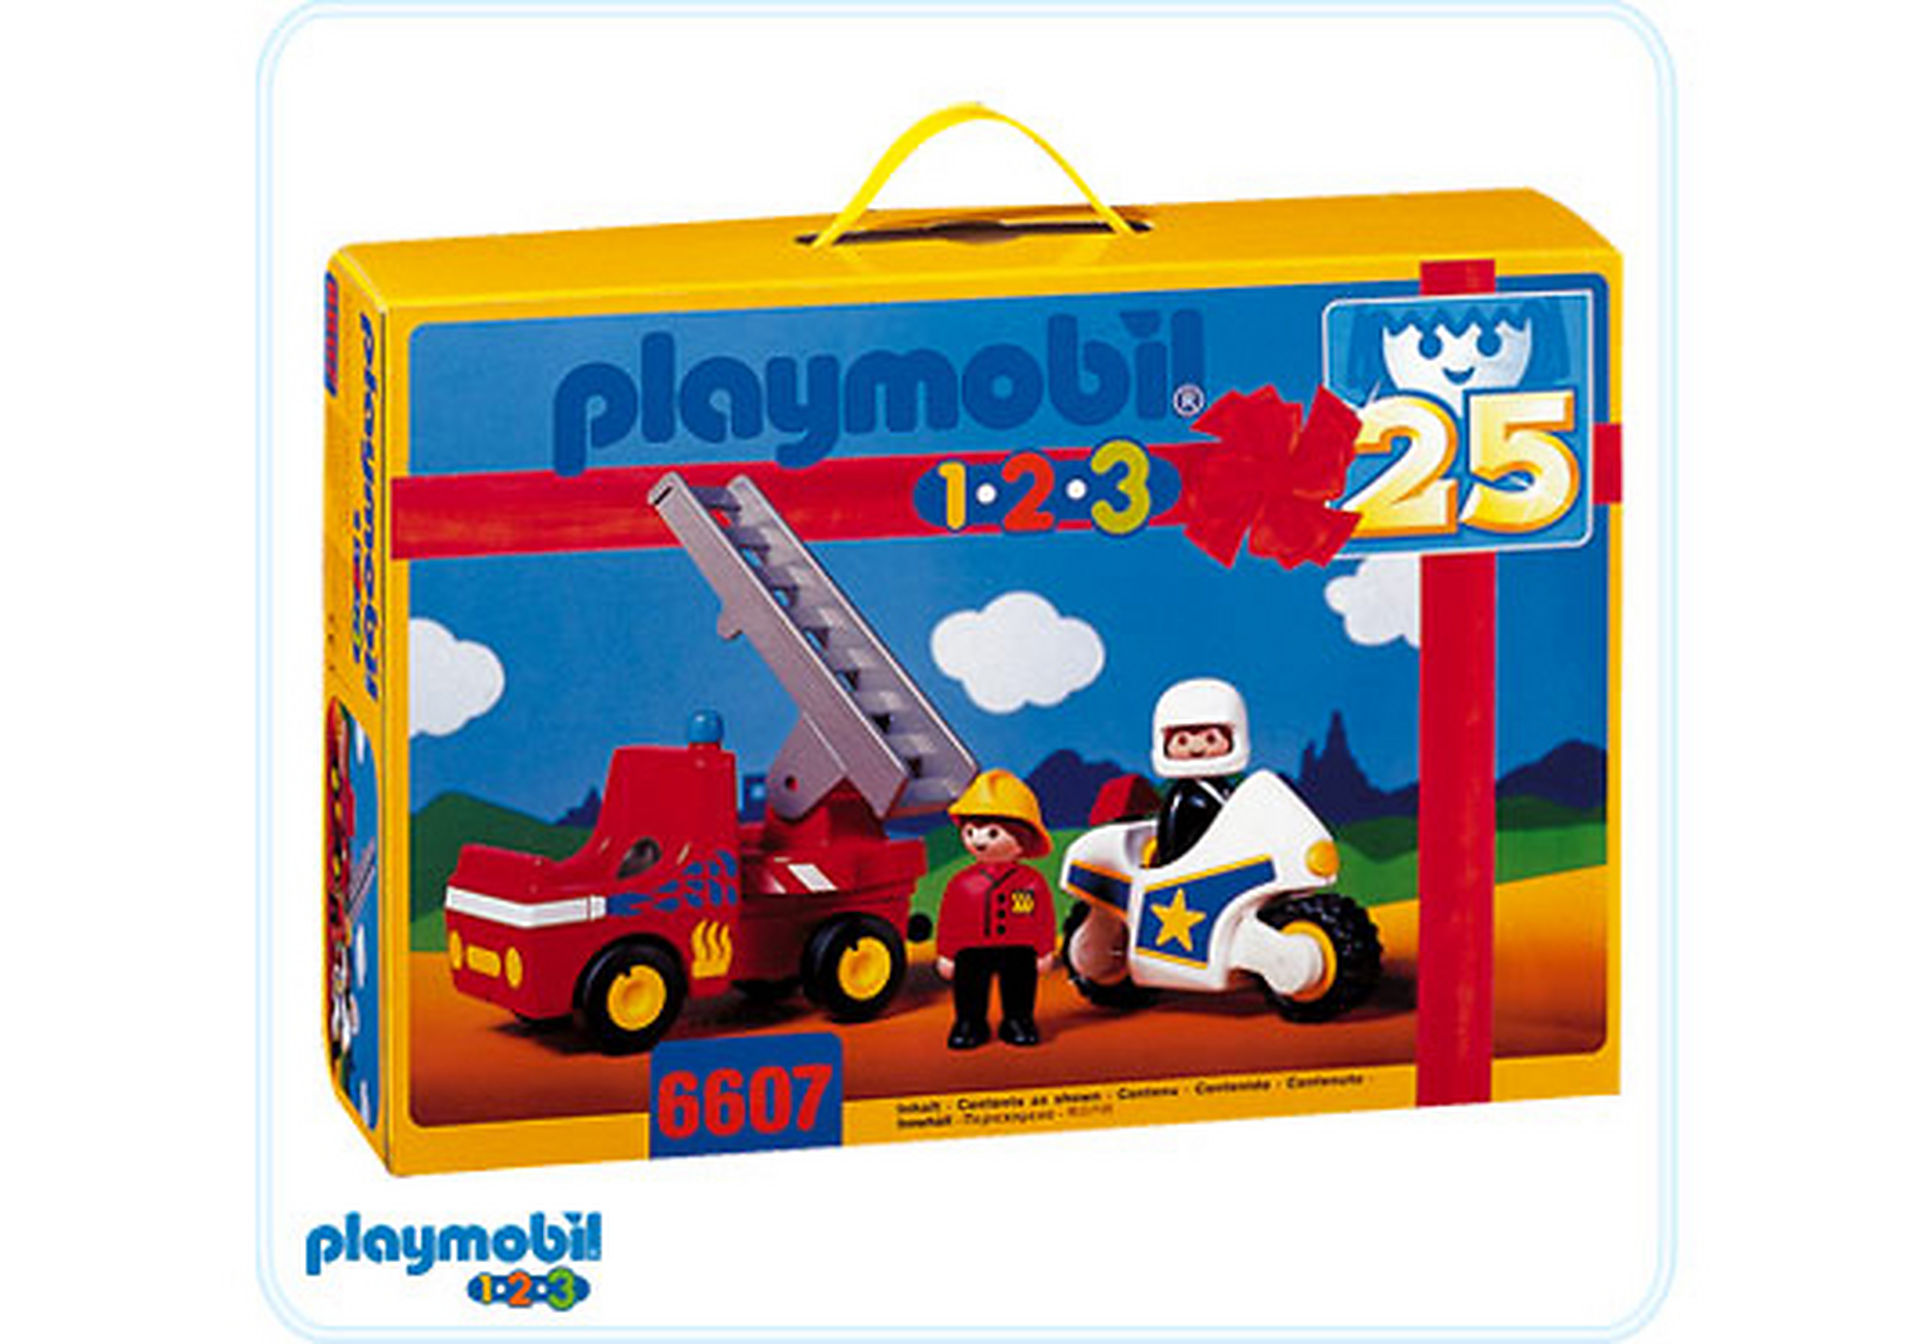 http://media.playmobil.com/i/playmobil/6607-A_product_detail/Rettungs-Set 1.2.3